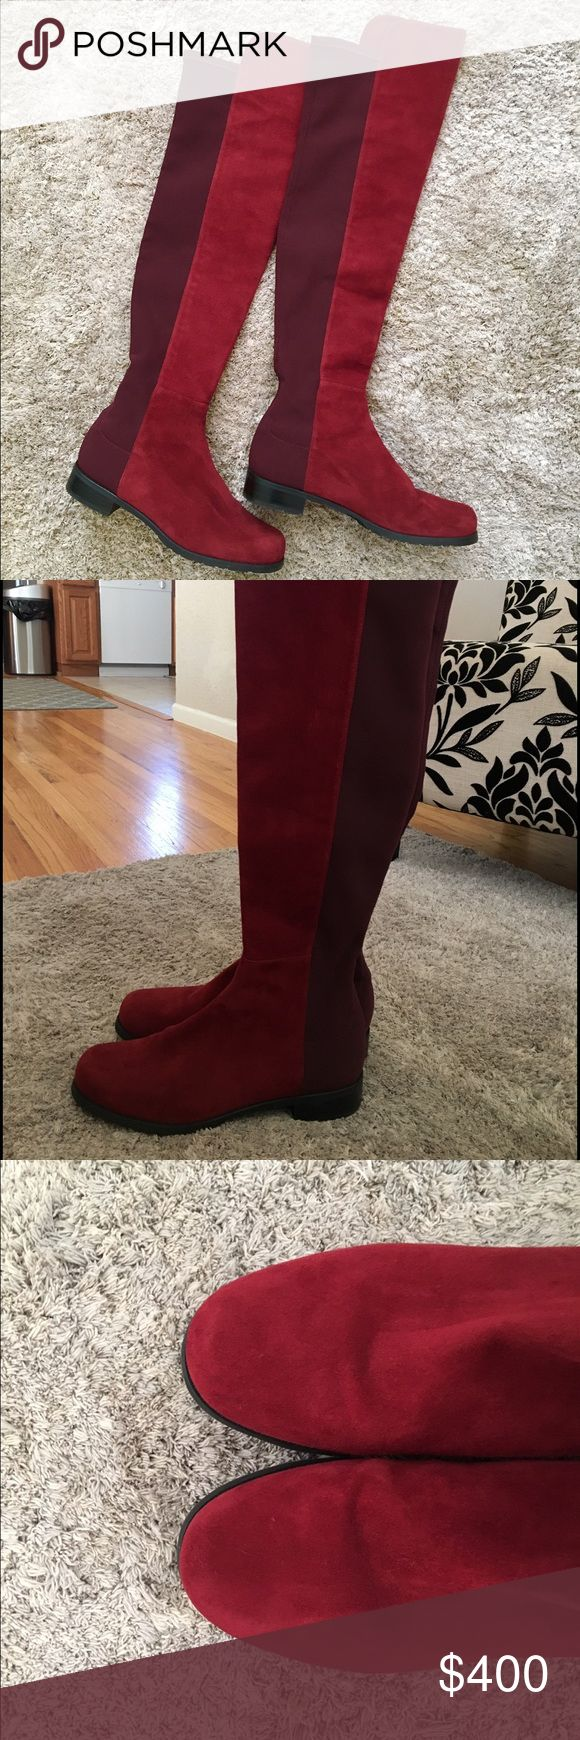 Stuart Weitzman 5050 boots Size 8 Stuart Weitzman red suede 5050 boots. Only worn twice, in very good condition Stuart Weitzman Shoes Over the Knee Boots